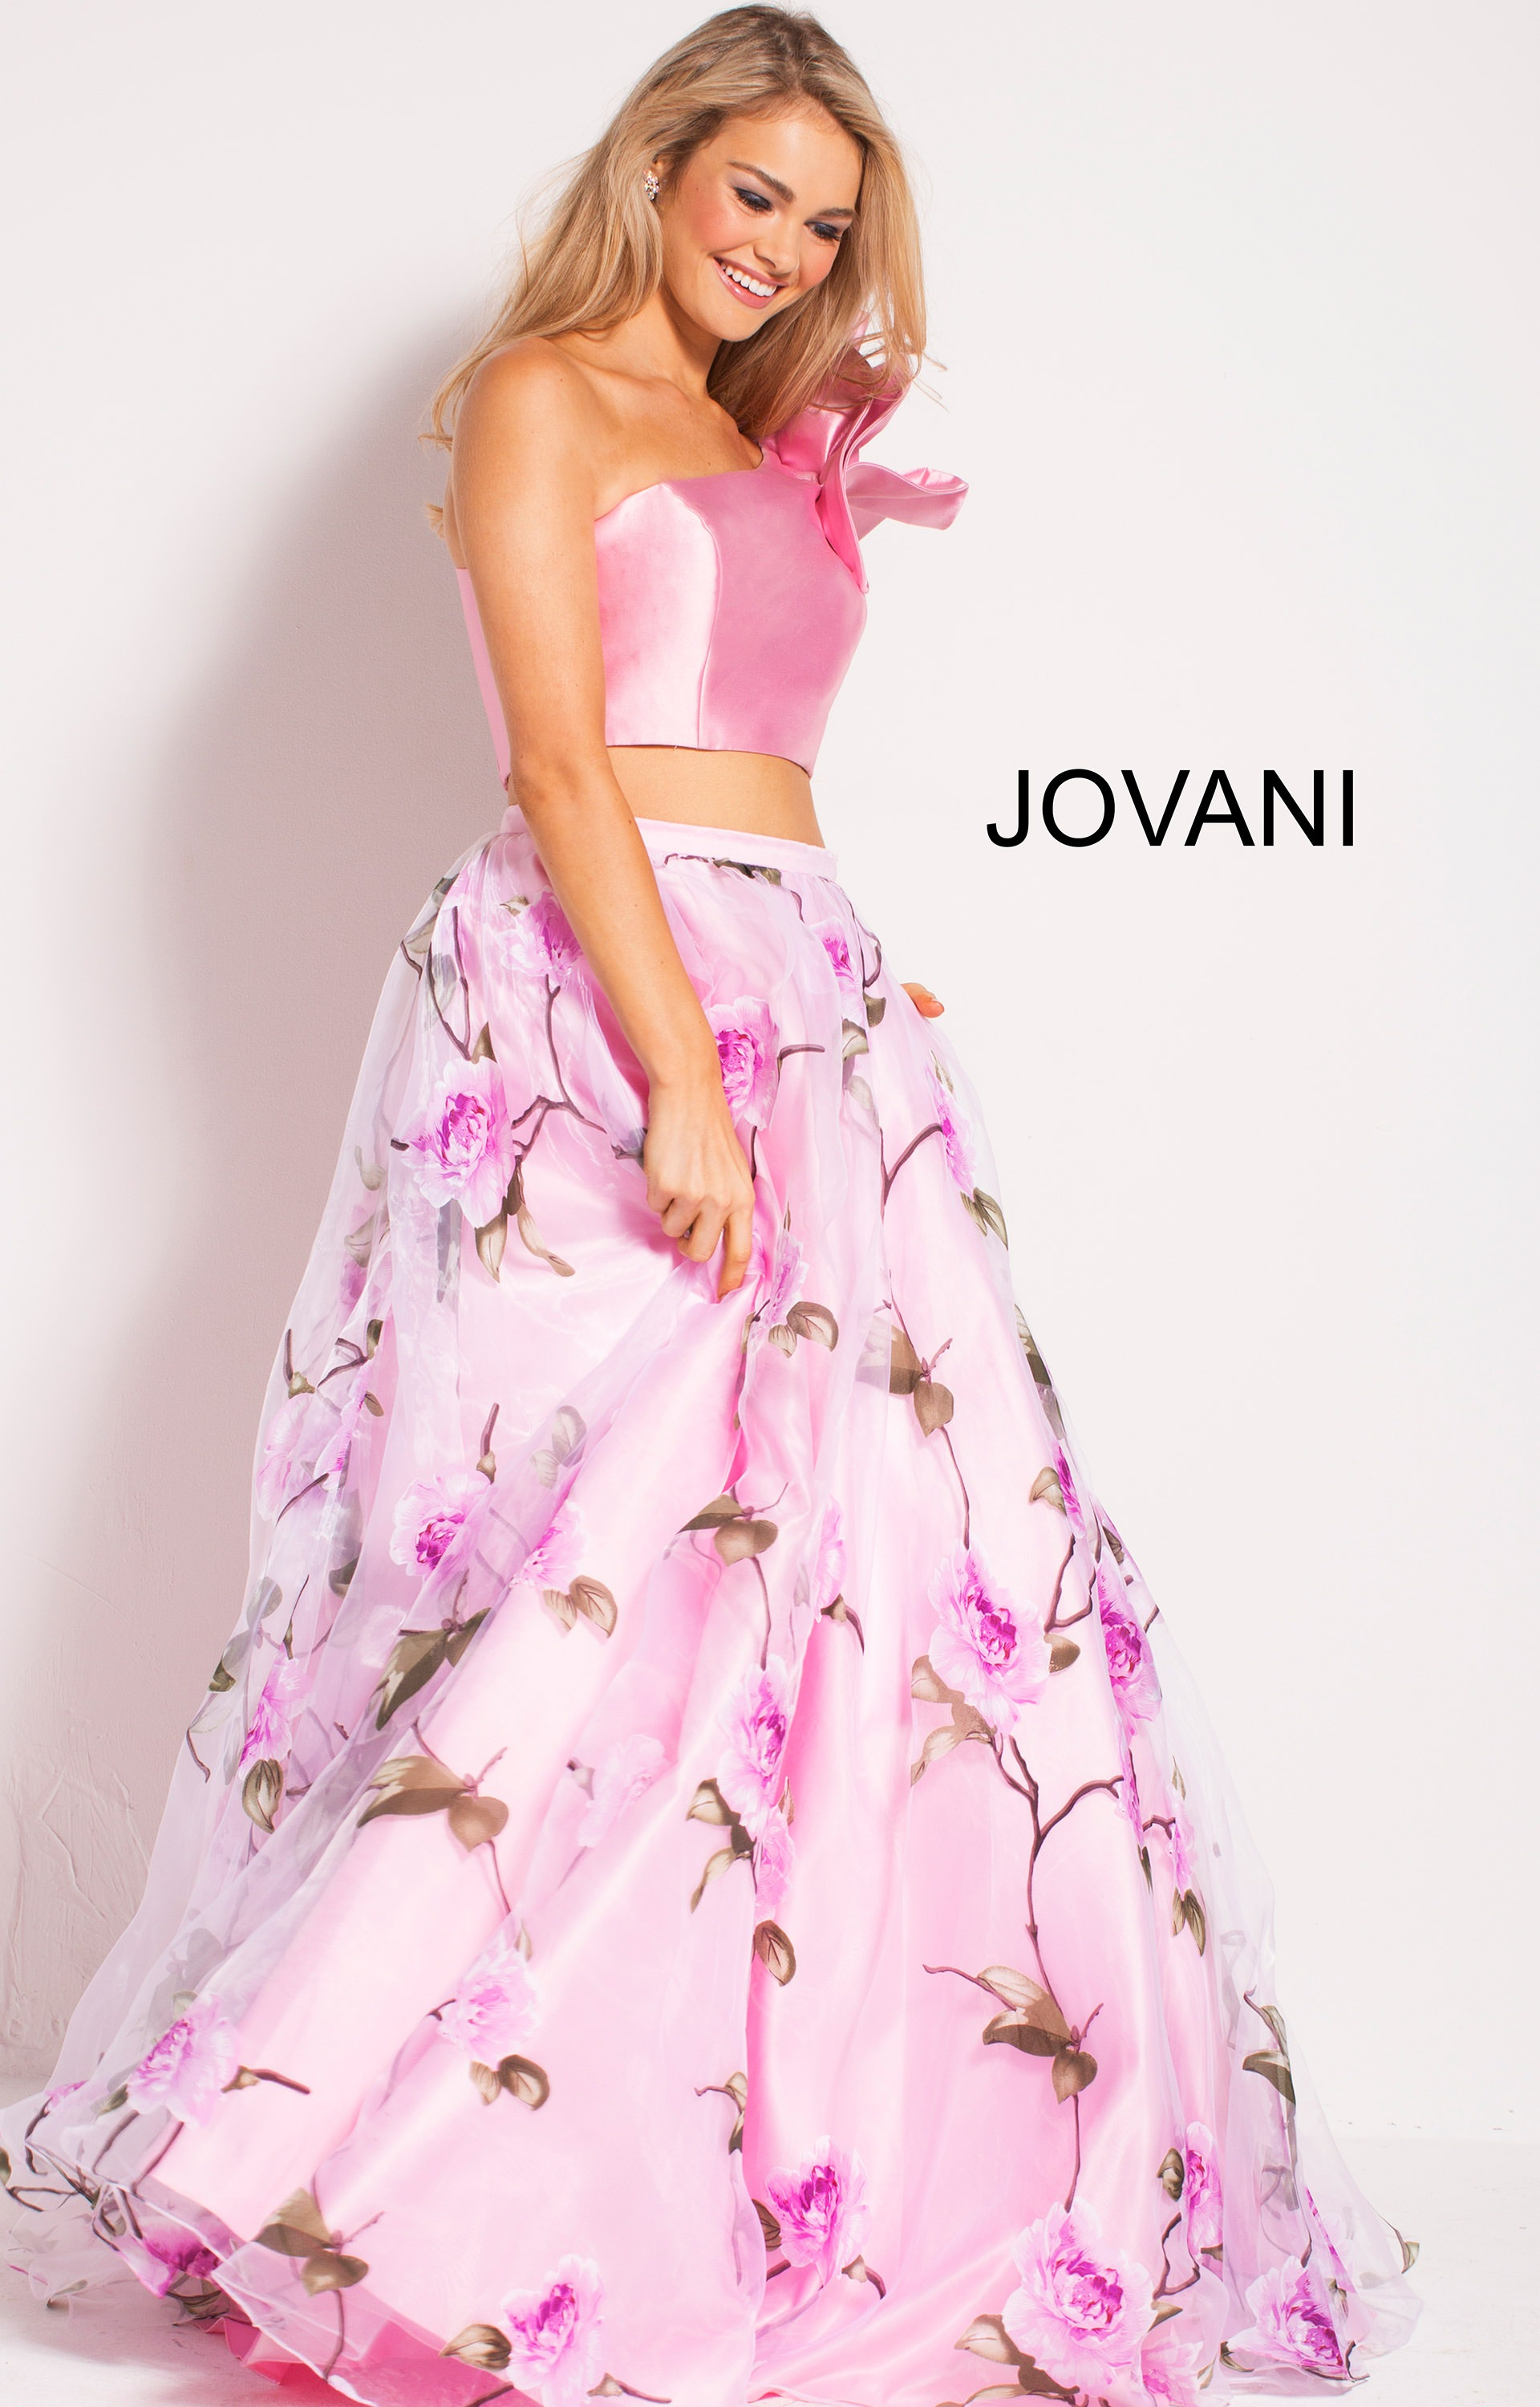 Jovani 60771 - 2 Piece Ruffle Sleeve Ball Gown Floral Dress Prom Dress